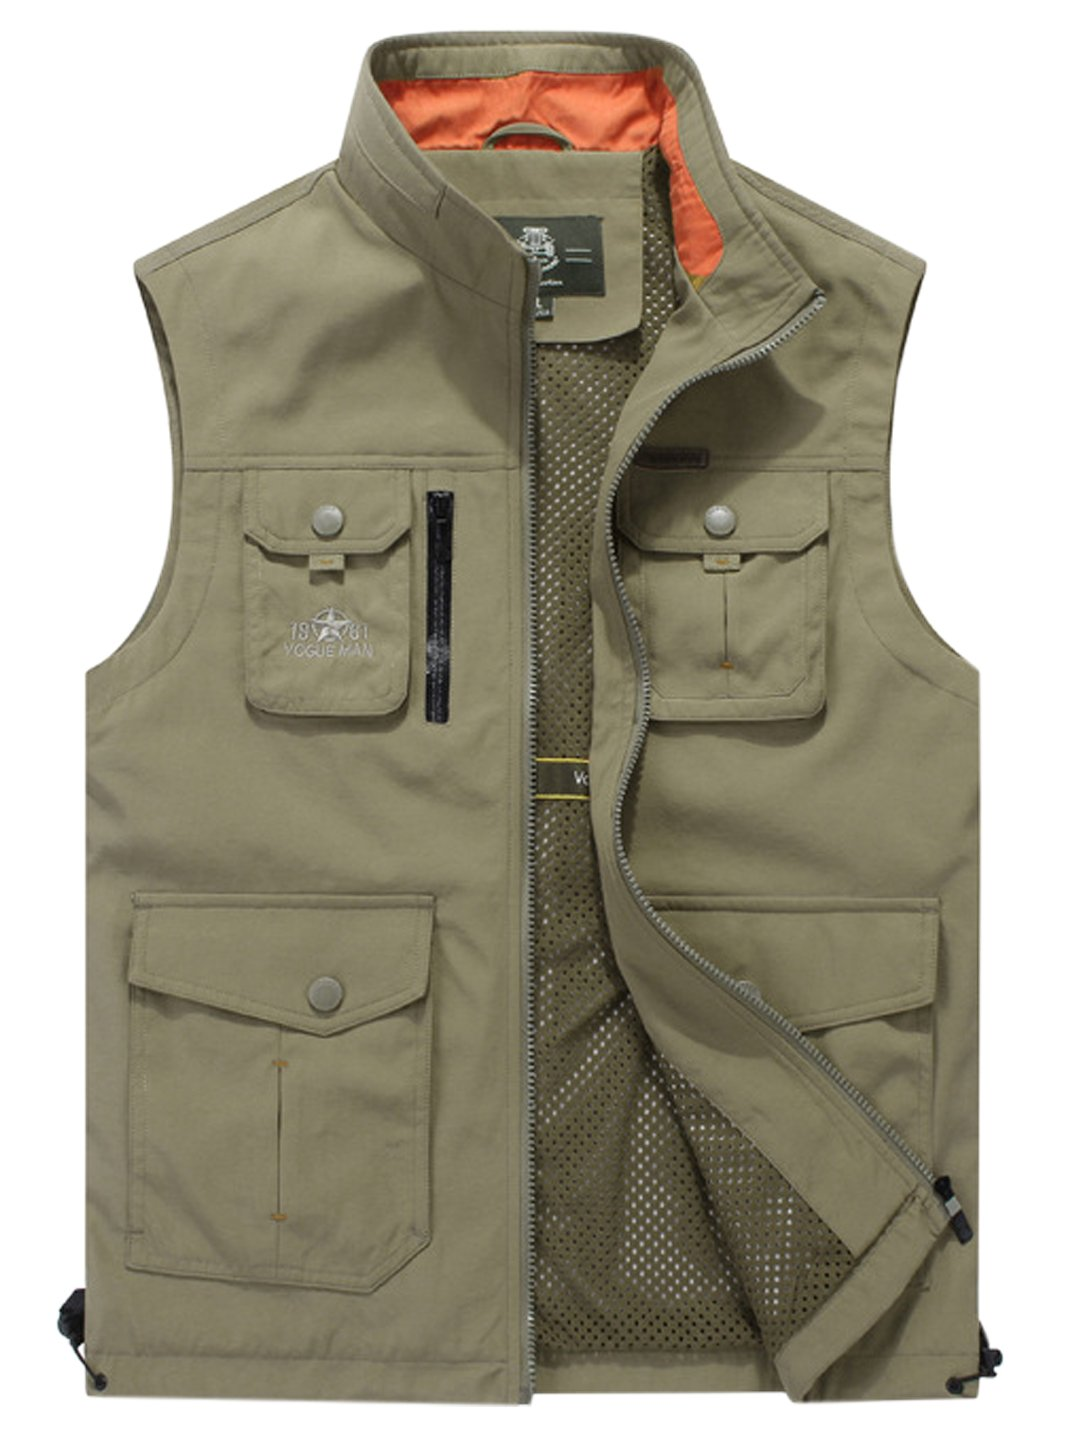 Gihuo Men's Utility Outdoor Multi Pockets Fishing Photo Journalist Sports Vest (Large, Khaki) by Gihuo